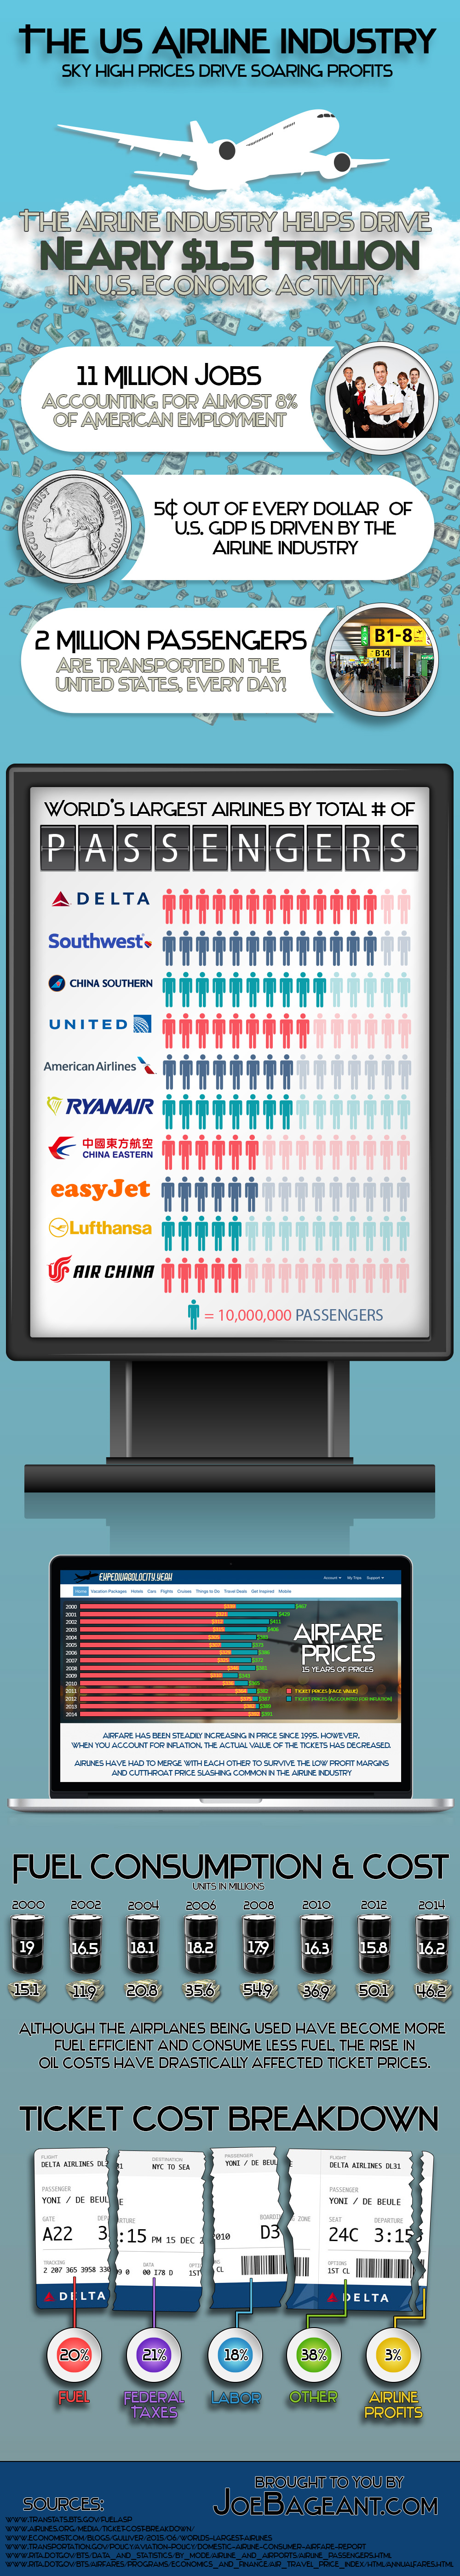 The US Airlines Industry: Sky High Prices Drive Soaring Profits